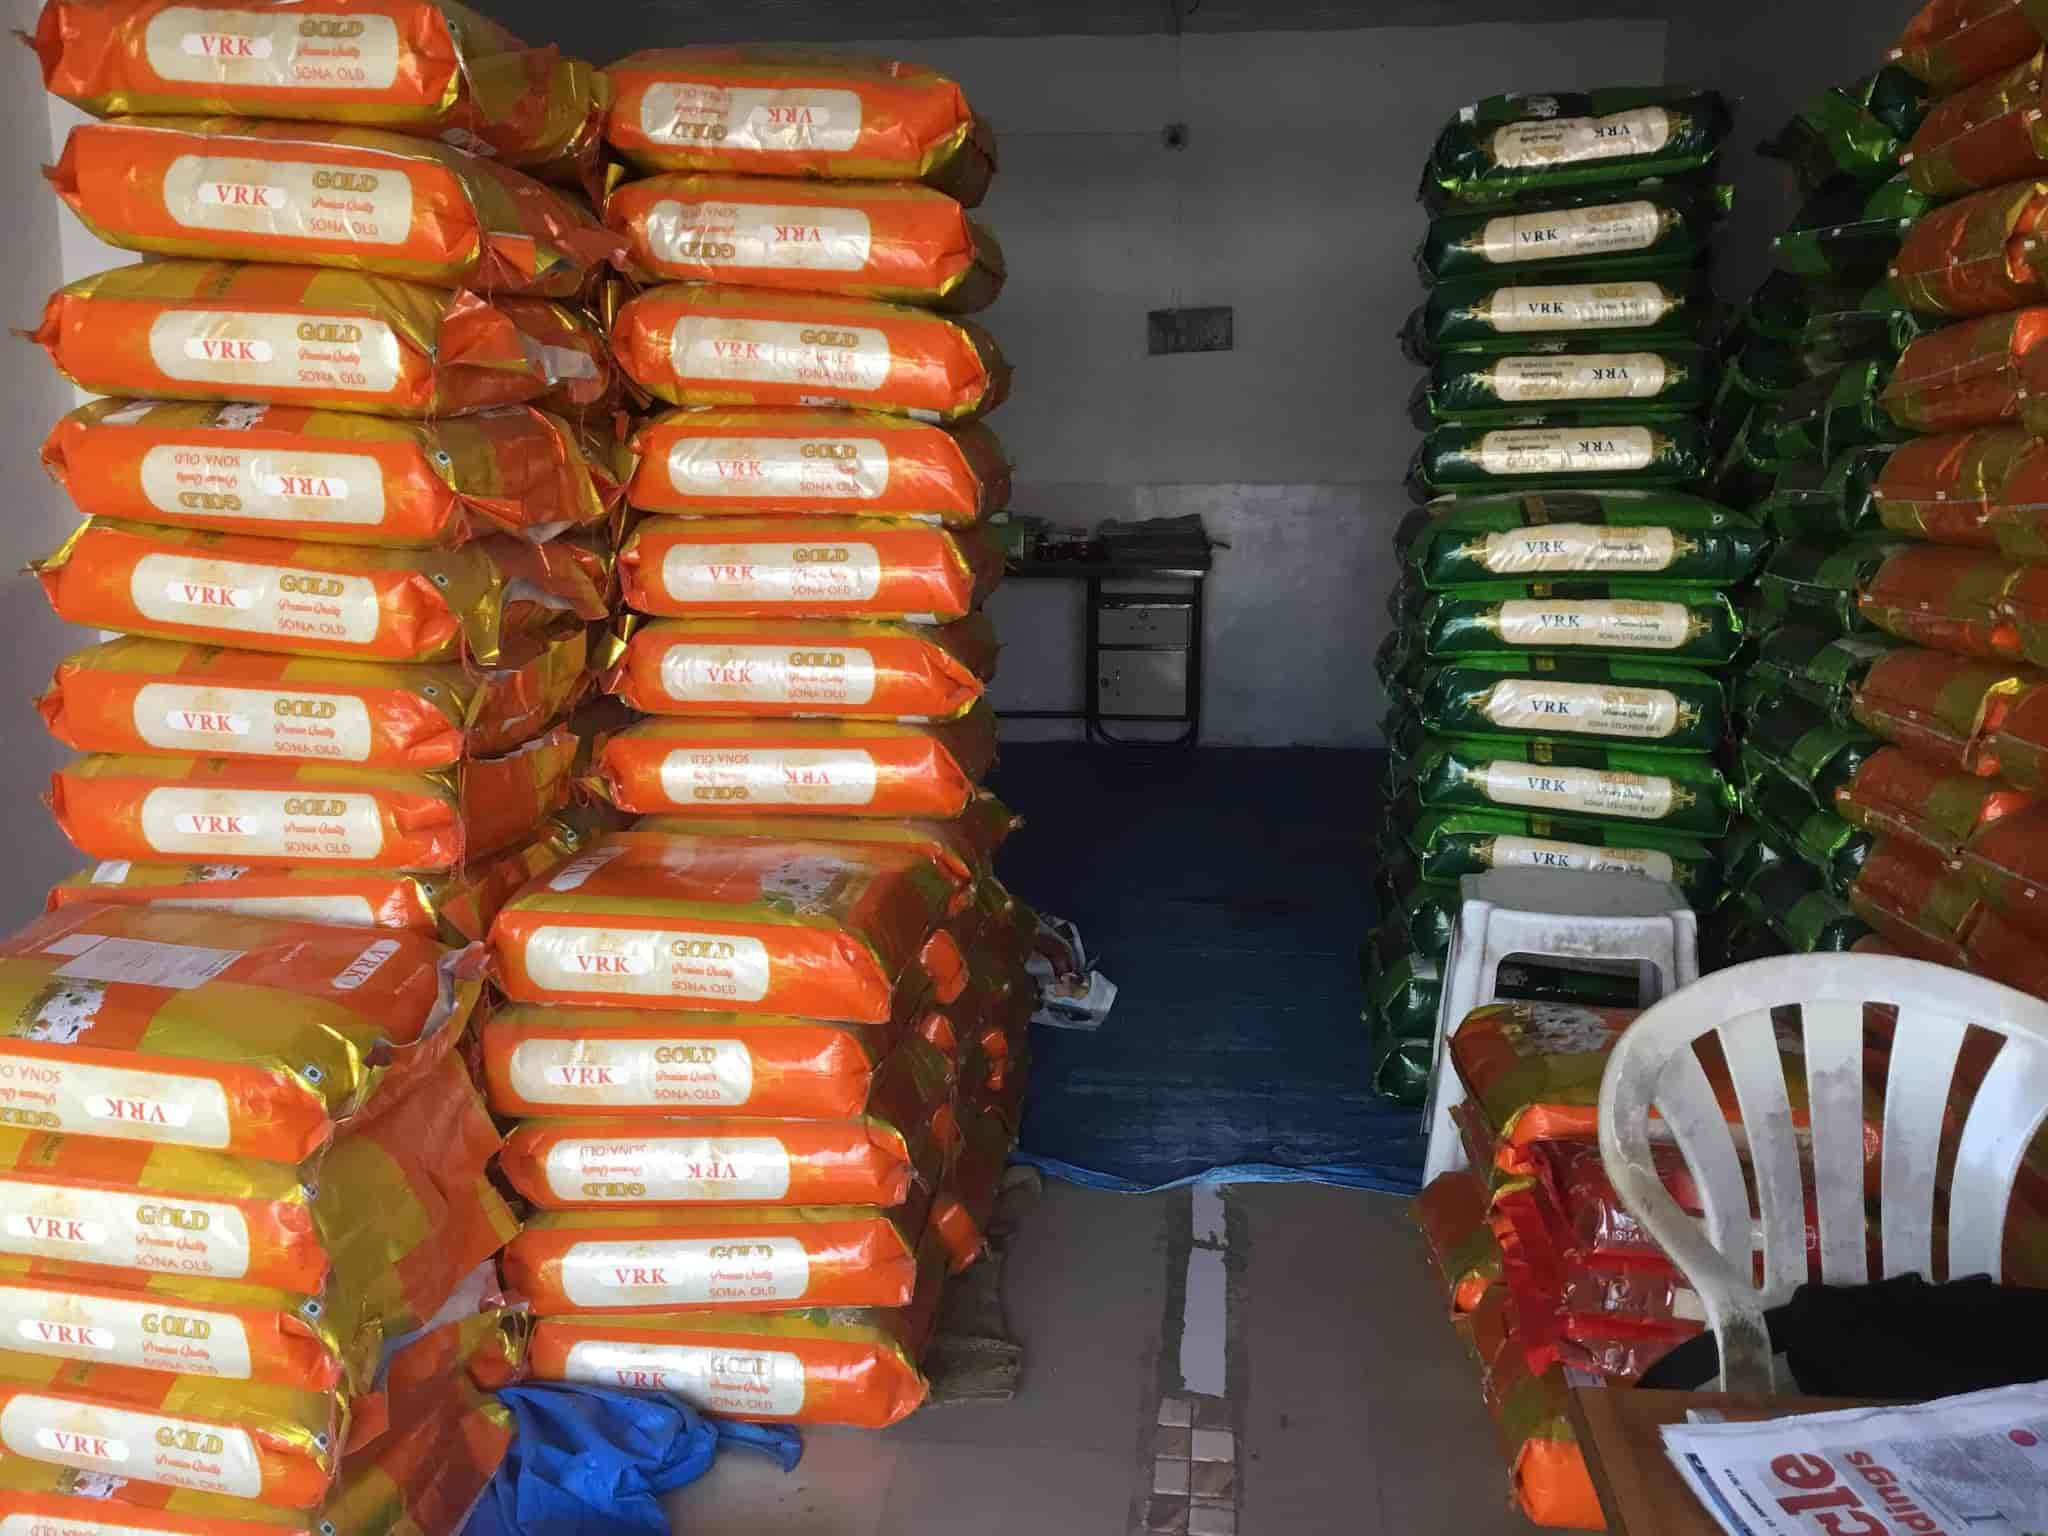 Harshith Rice Suppliers Photos, Lala Cheruvu, Rajahmundry- Pictures